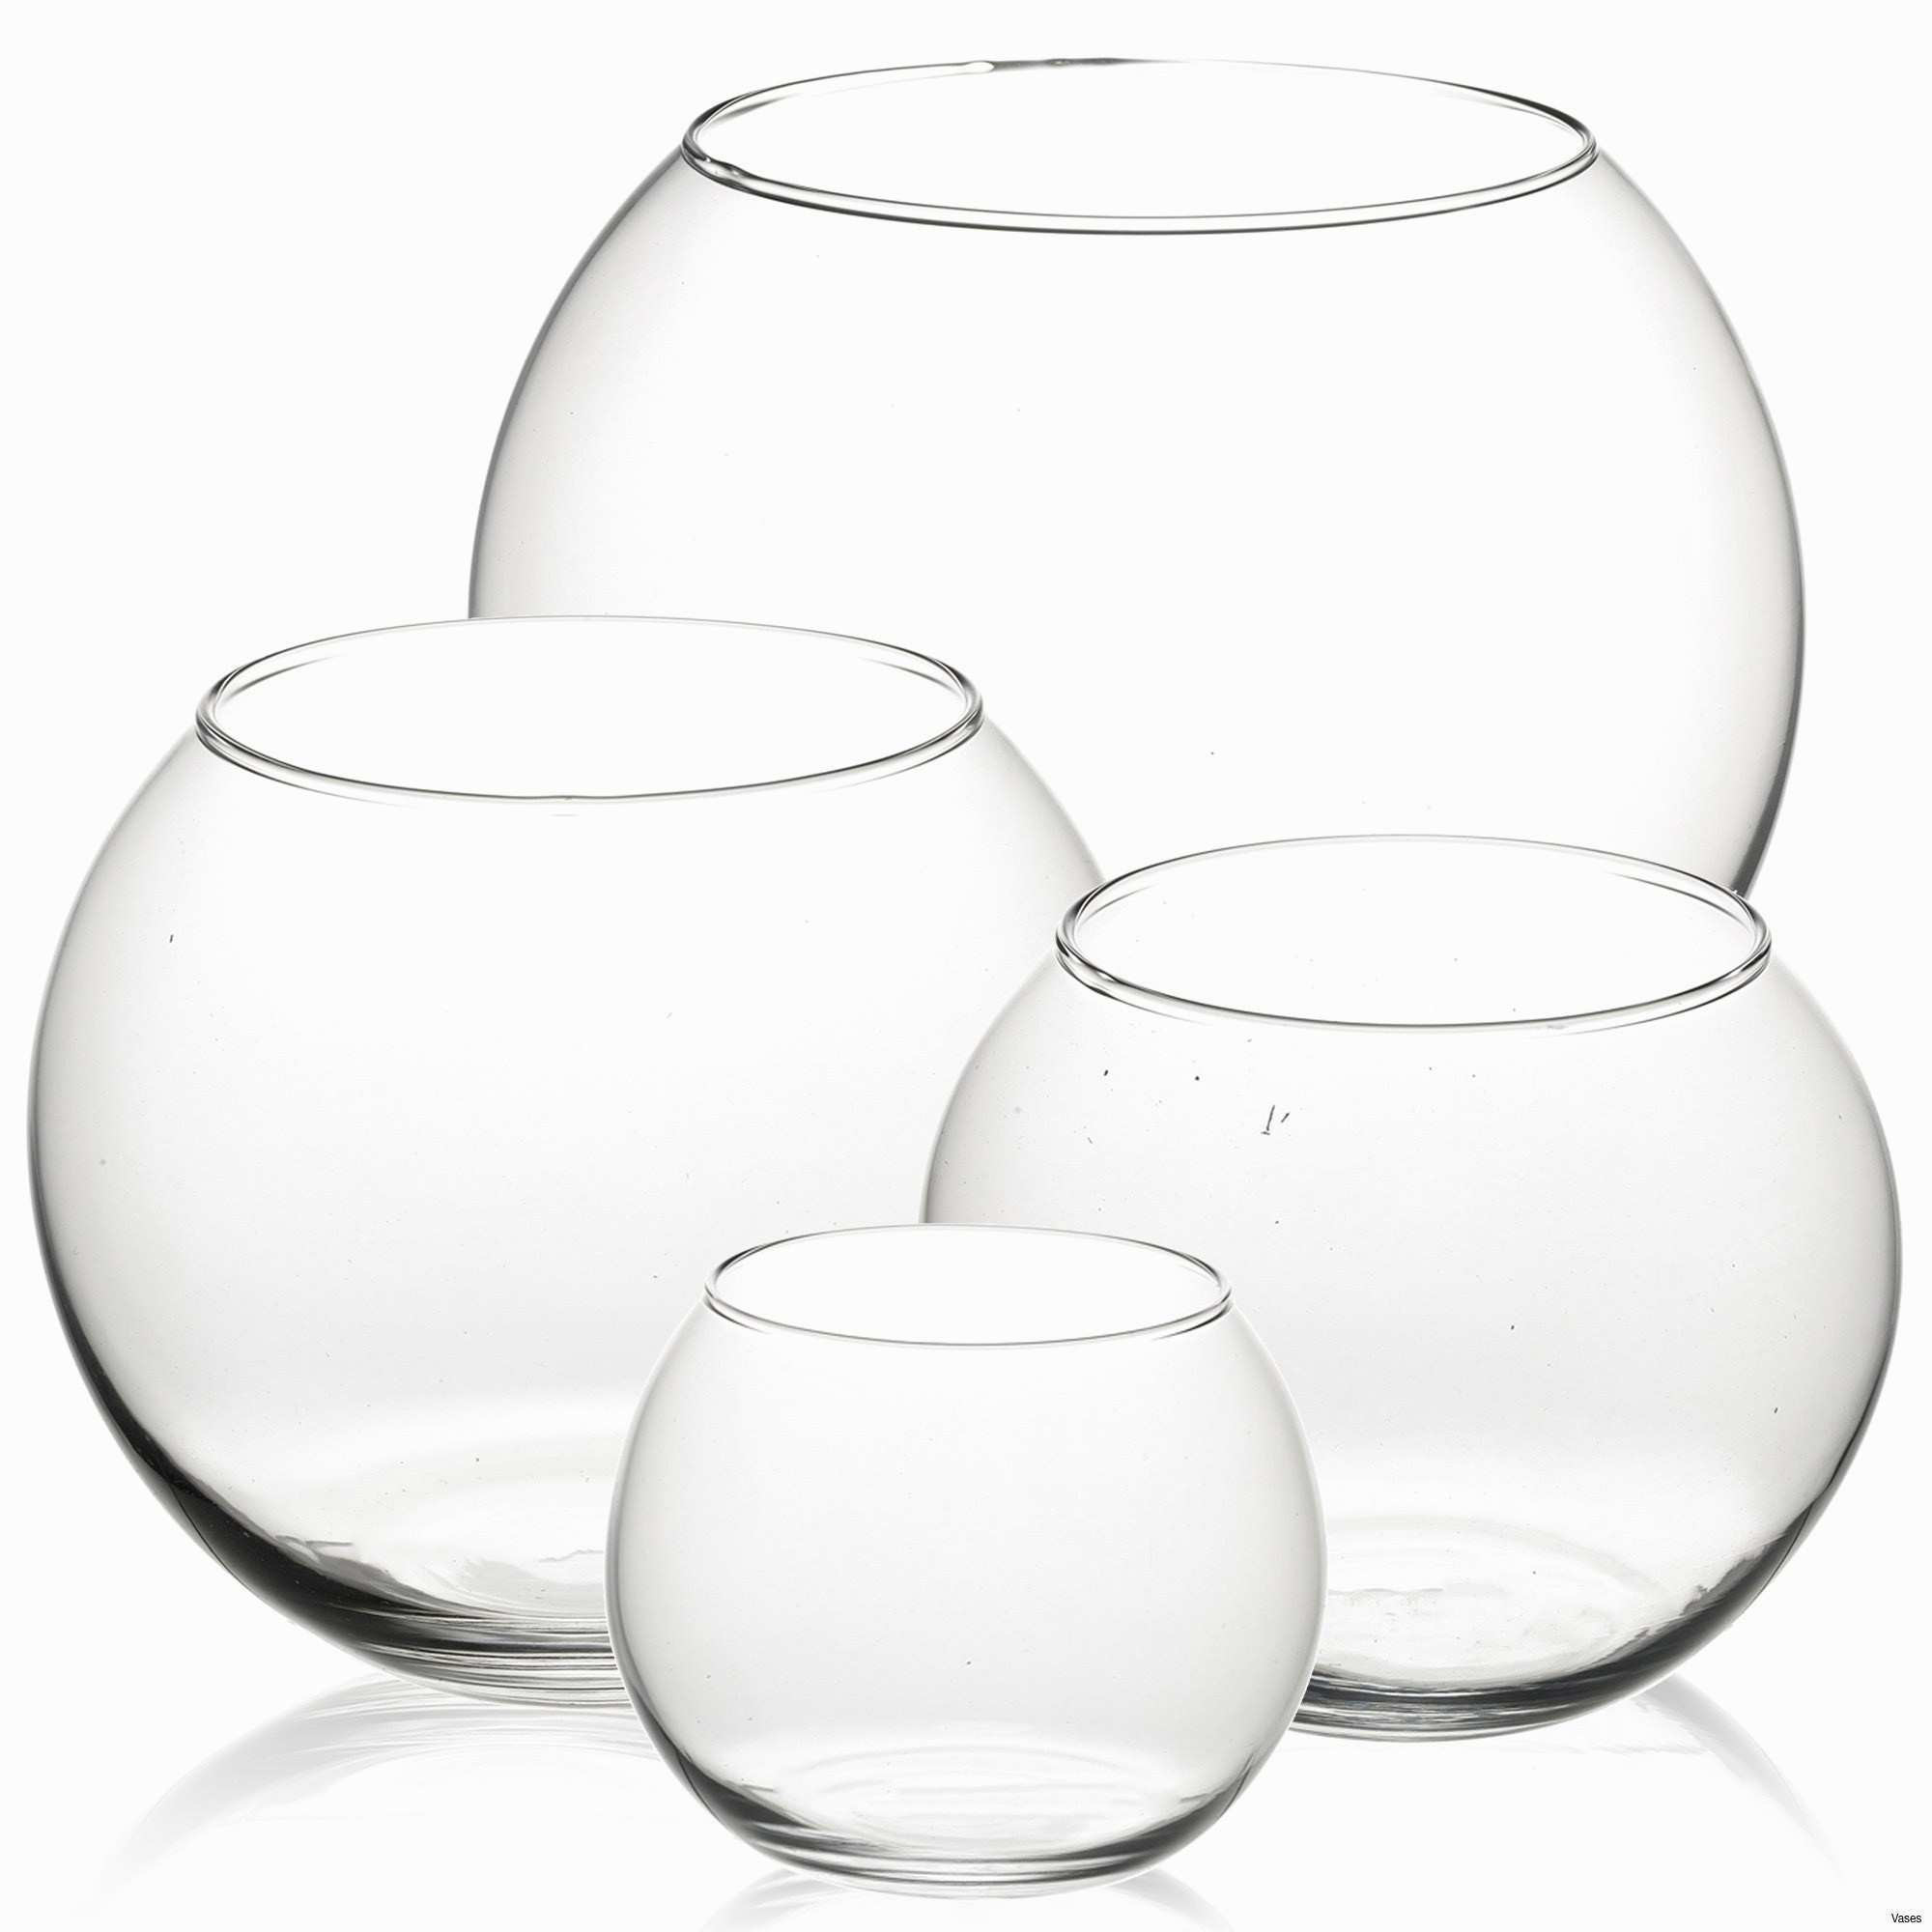 Glass Candy Vases Of 22 Wonderful Glass Pedestal Candle Holder Azcounselrealty Com Pertaining to Glass Pedestal Candle Holder Awesome Decorative Fillers for Glass Vases New H Vases Easter Vase I